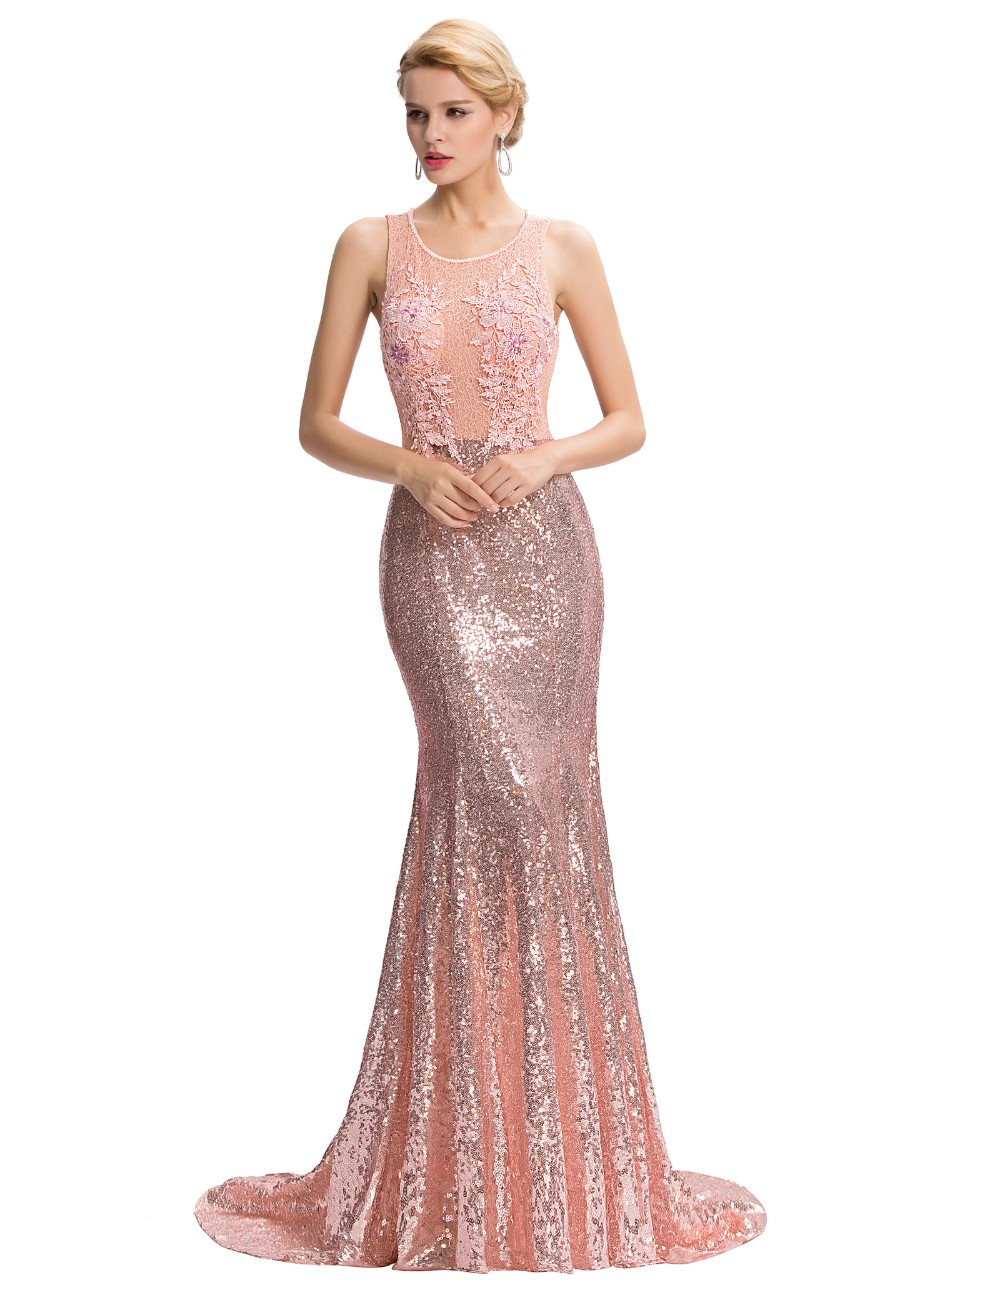 Elegant Pink Sequin Floor Length Backless Lace Mermaid Evening Dress 3